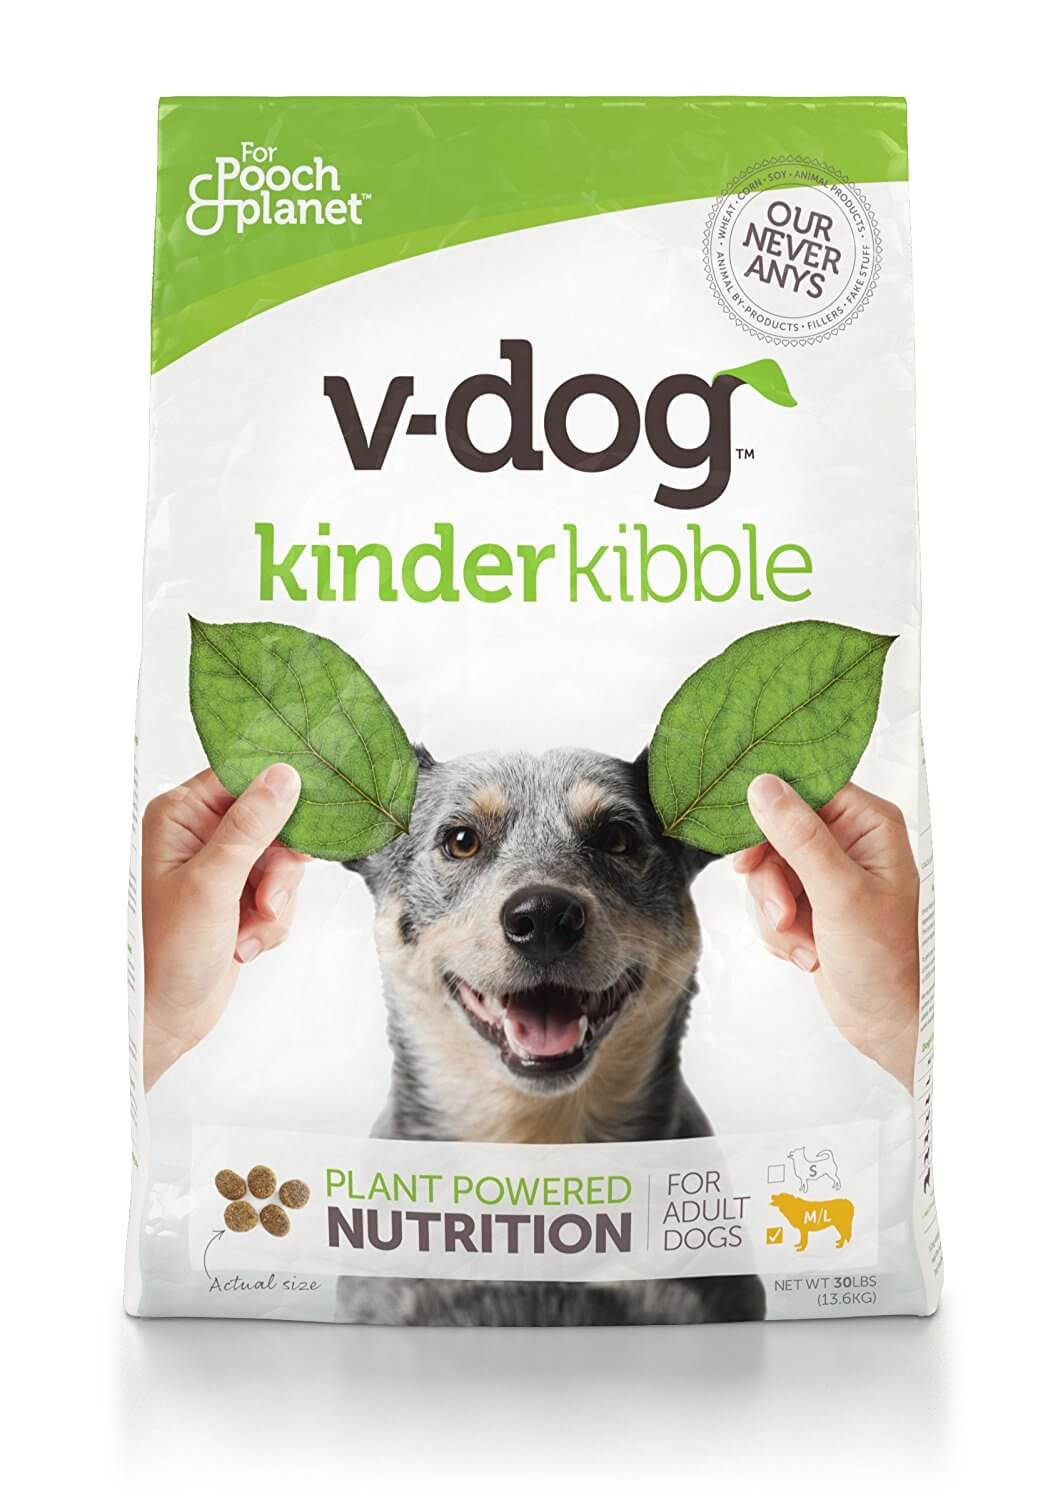 Vegan Dog Food Brands and Recipes | The Green Loot #vegan #dogfood